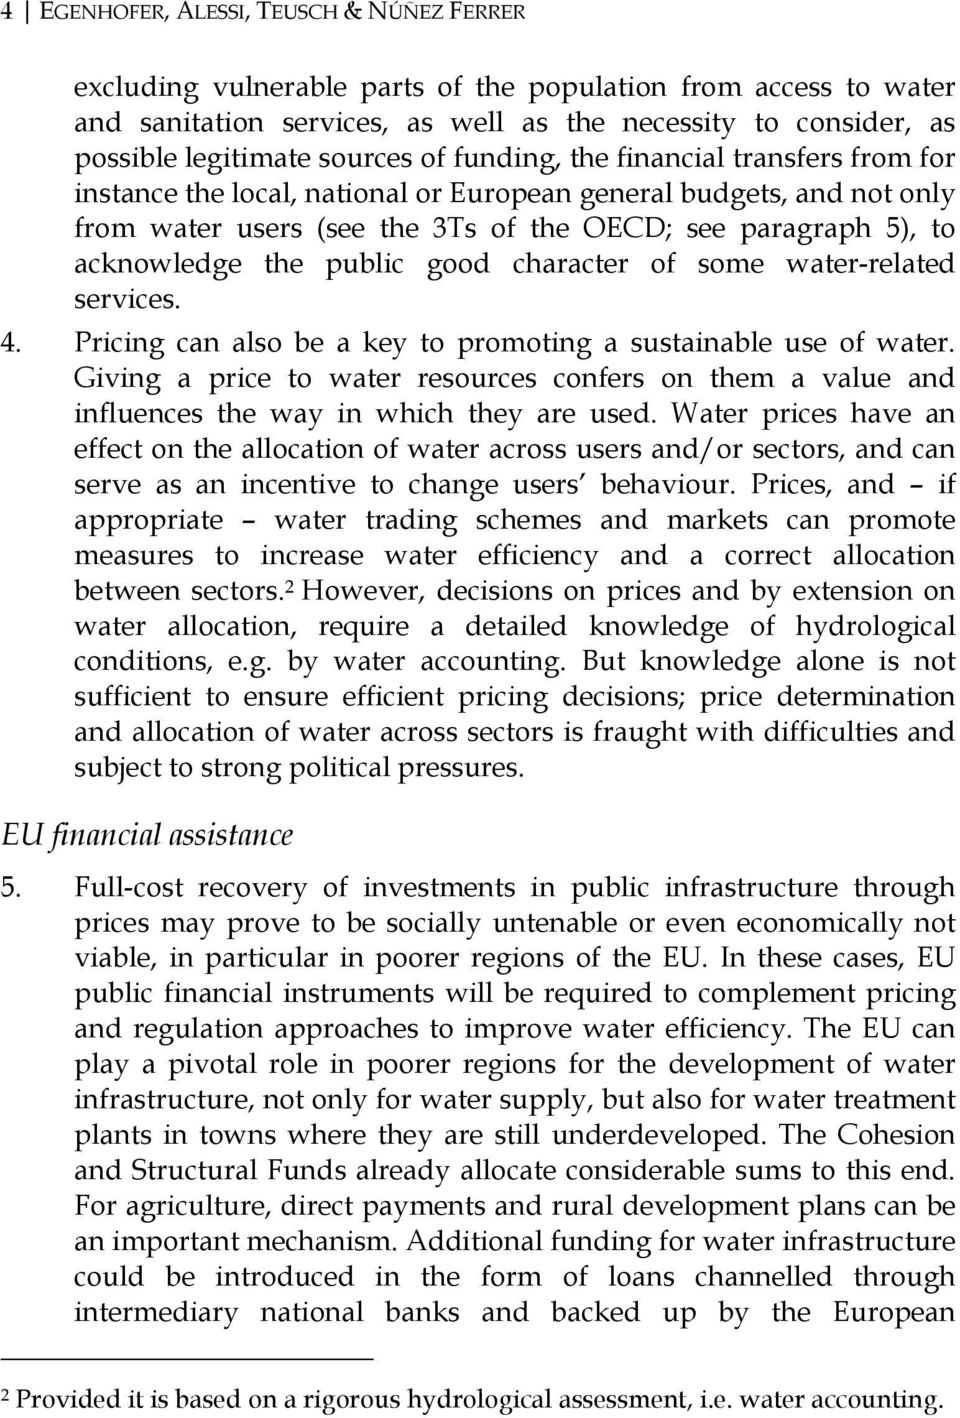 the public good character of some water-related services. 4. Pricing can also be a key to promoting a sustainable use of water.